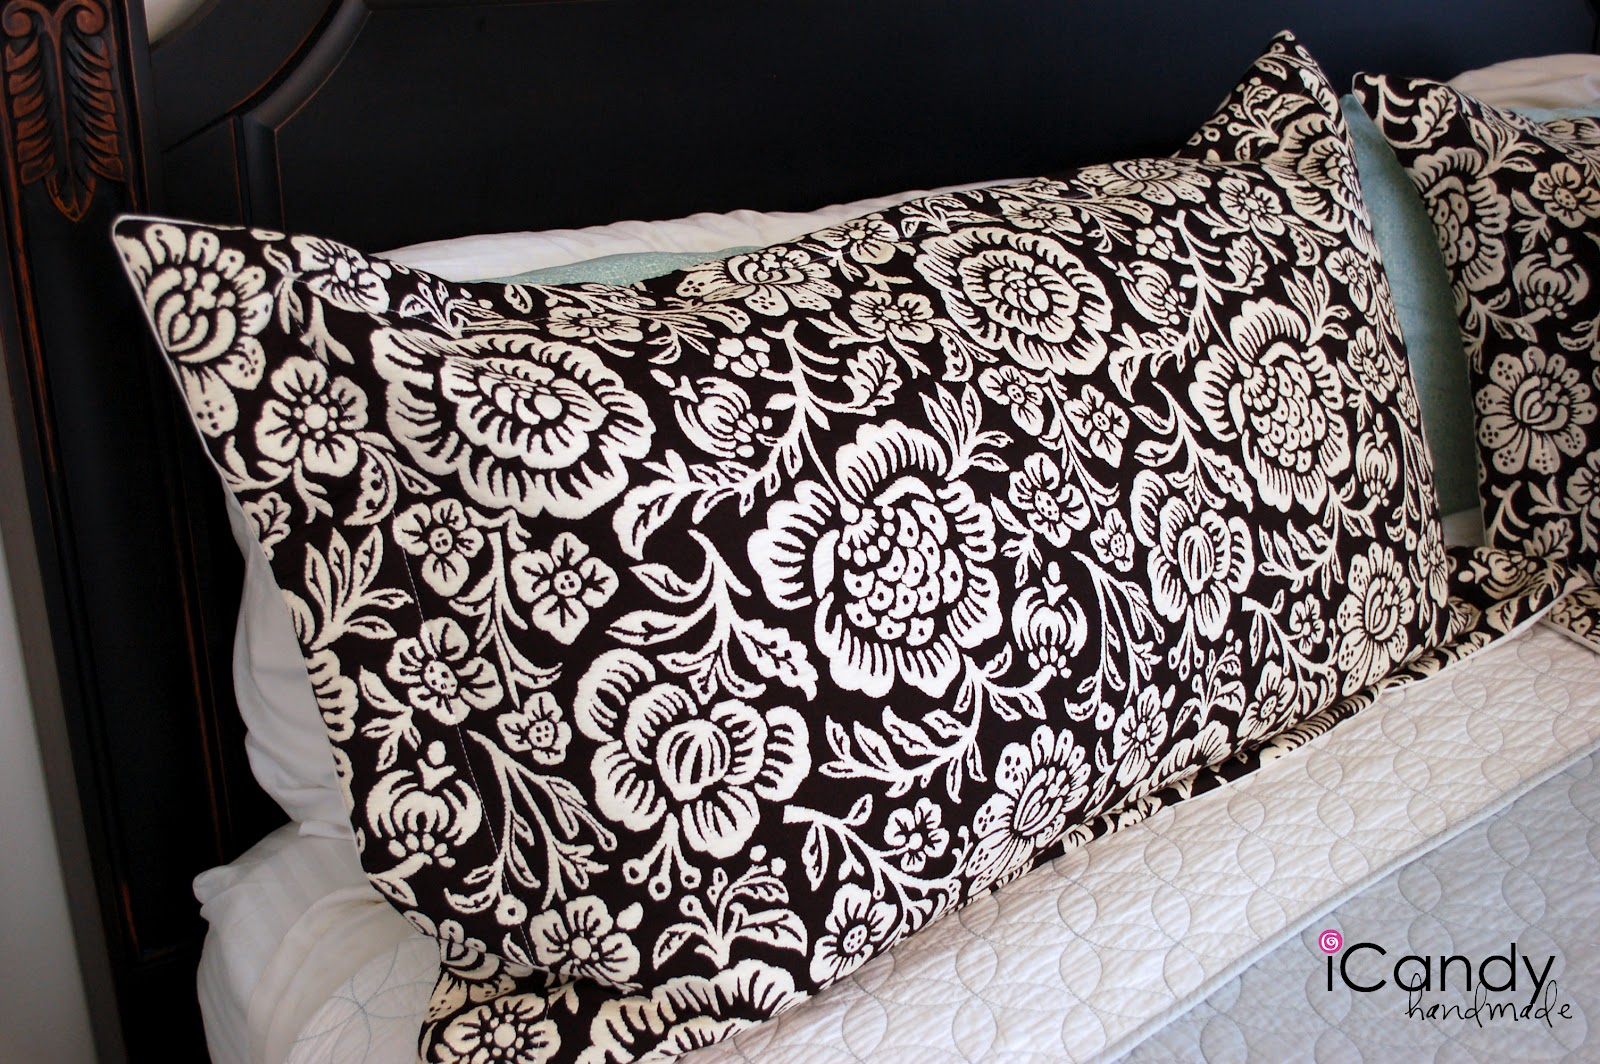 DIY King-sized Pillow Shams and Bed Makeover - iCandy handmade